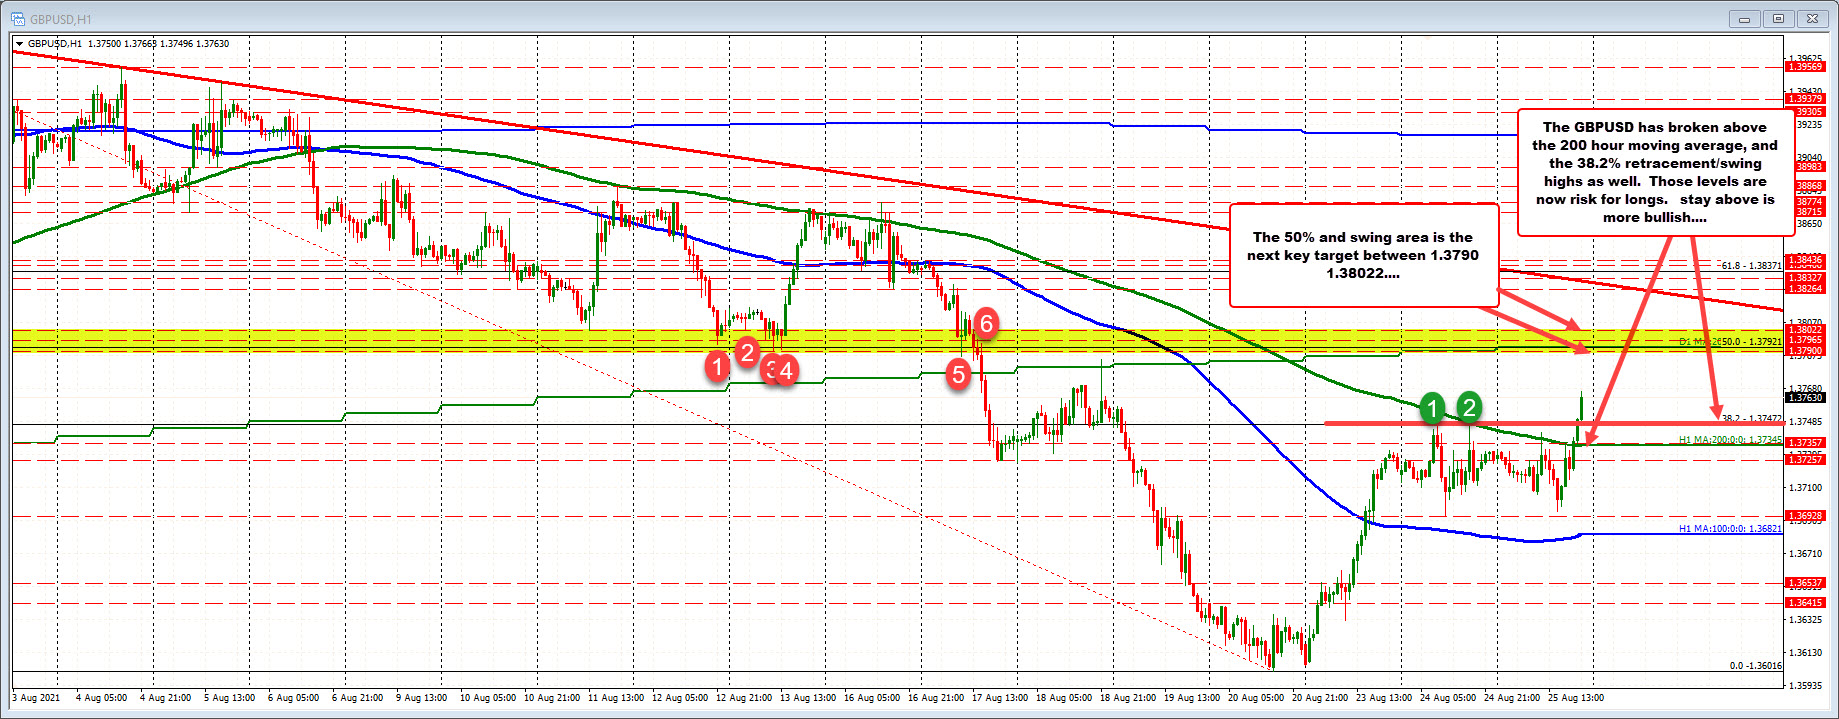 GBPUSD trades to a new week high (highest level since August 17). EURUSD also rising.